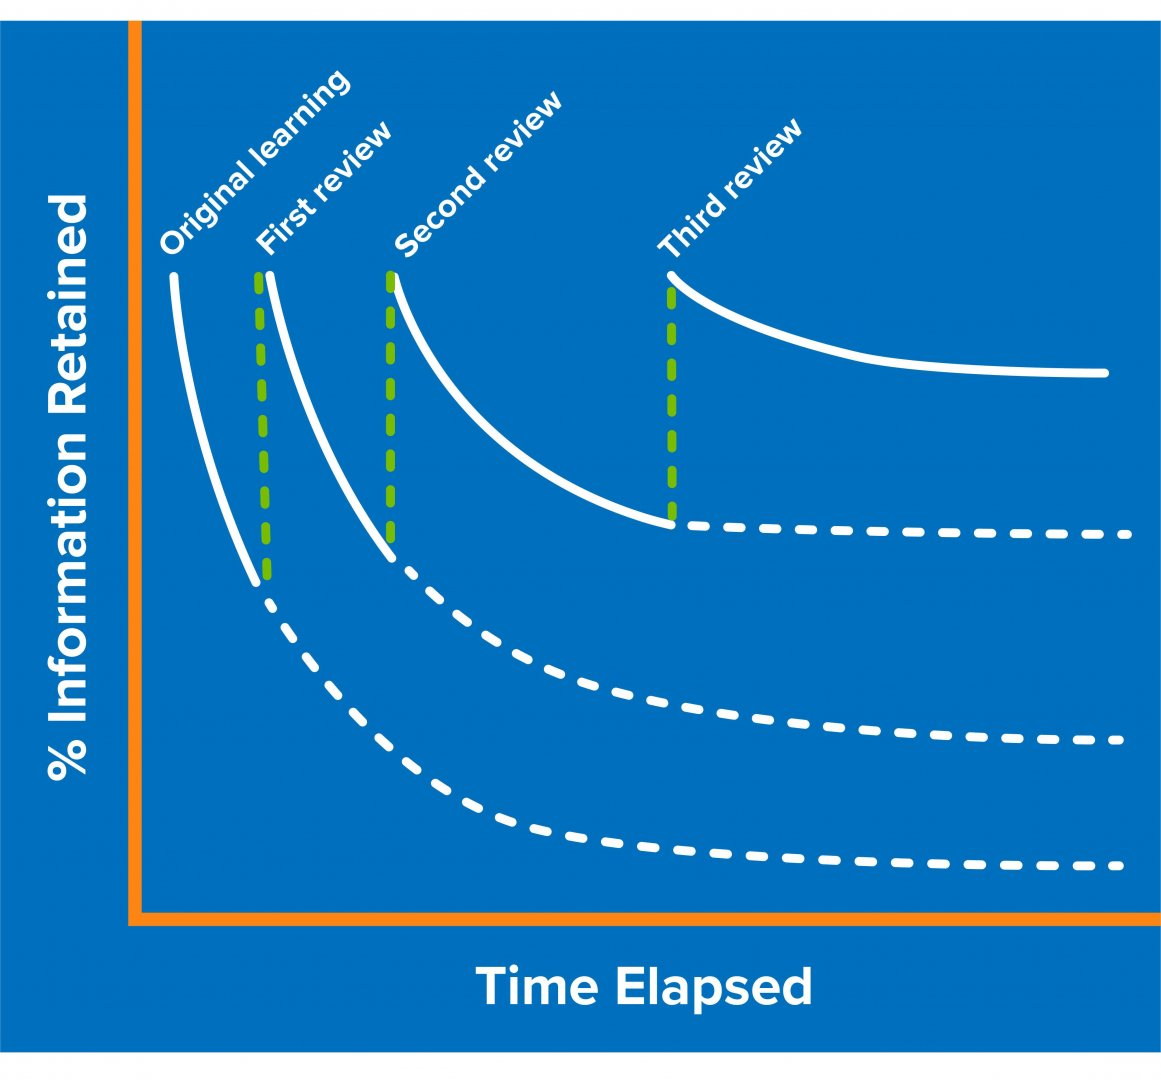 Using_Spaced_Learning_to_Combat_the_Forgetting_Curve_Cropped_FINAL.jpg